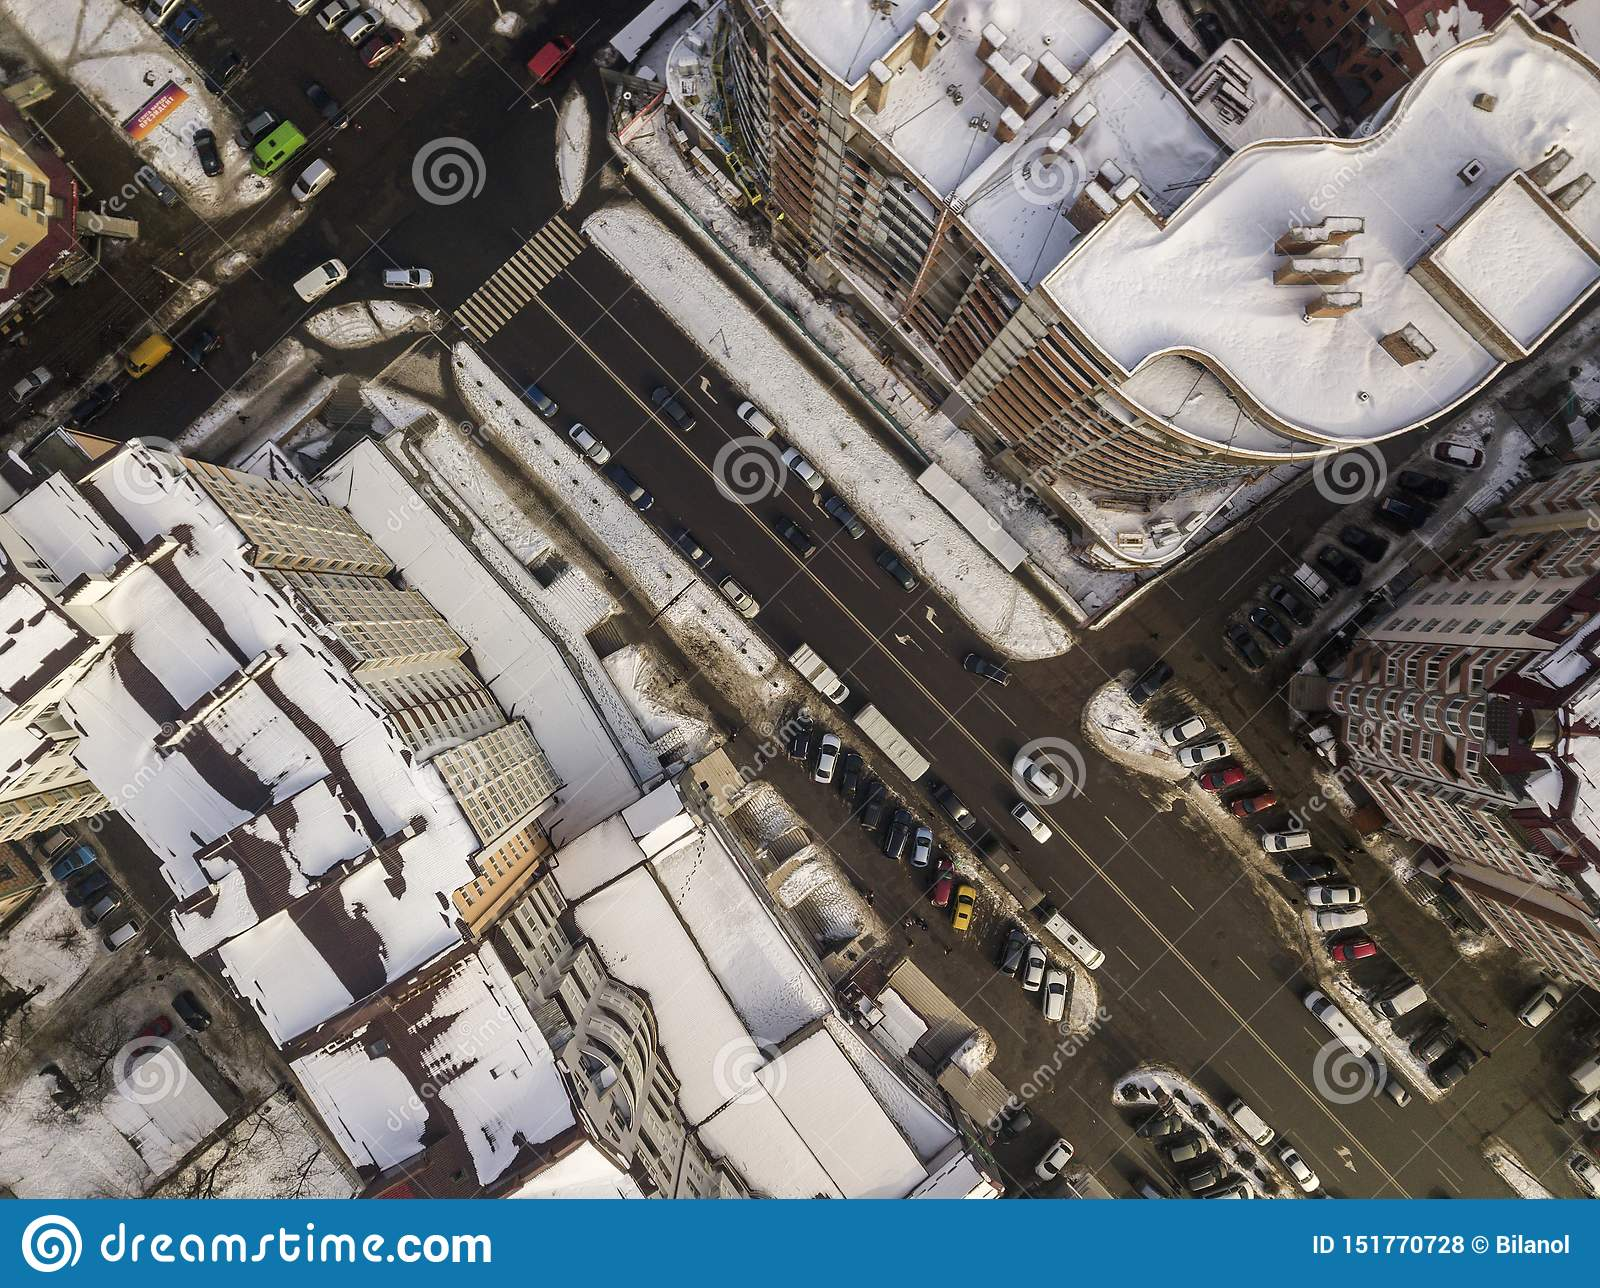 Aerial black and white winter top view of modern city with tall buildings, parked and moving cars along streets with road marking